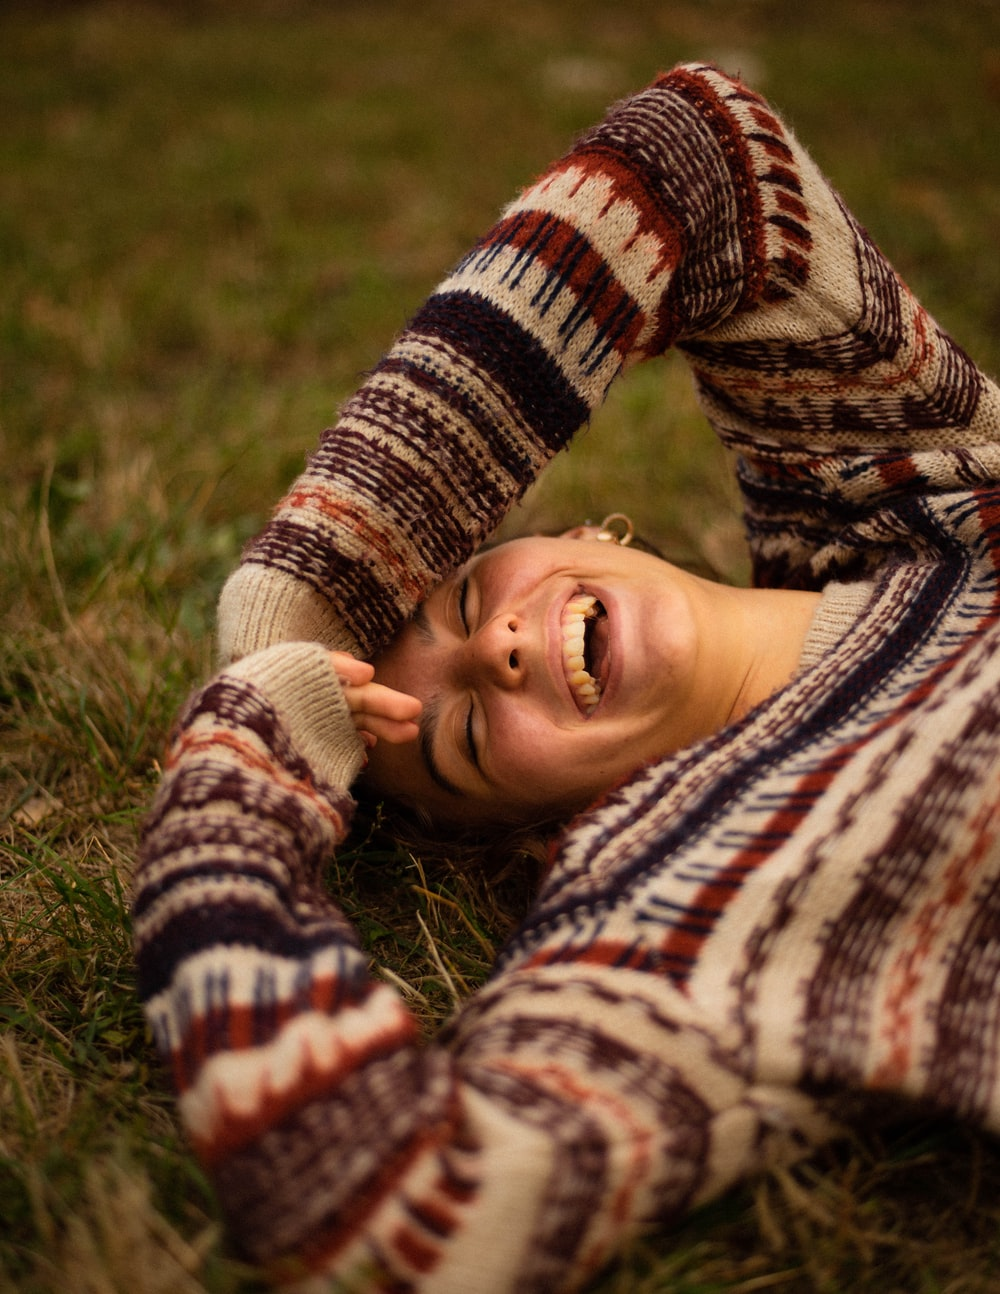 woman in brown and white sweater lying on green grass field during daytime